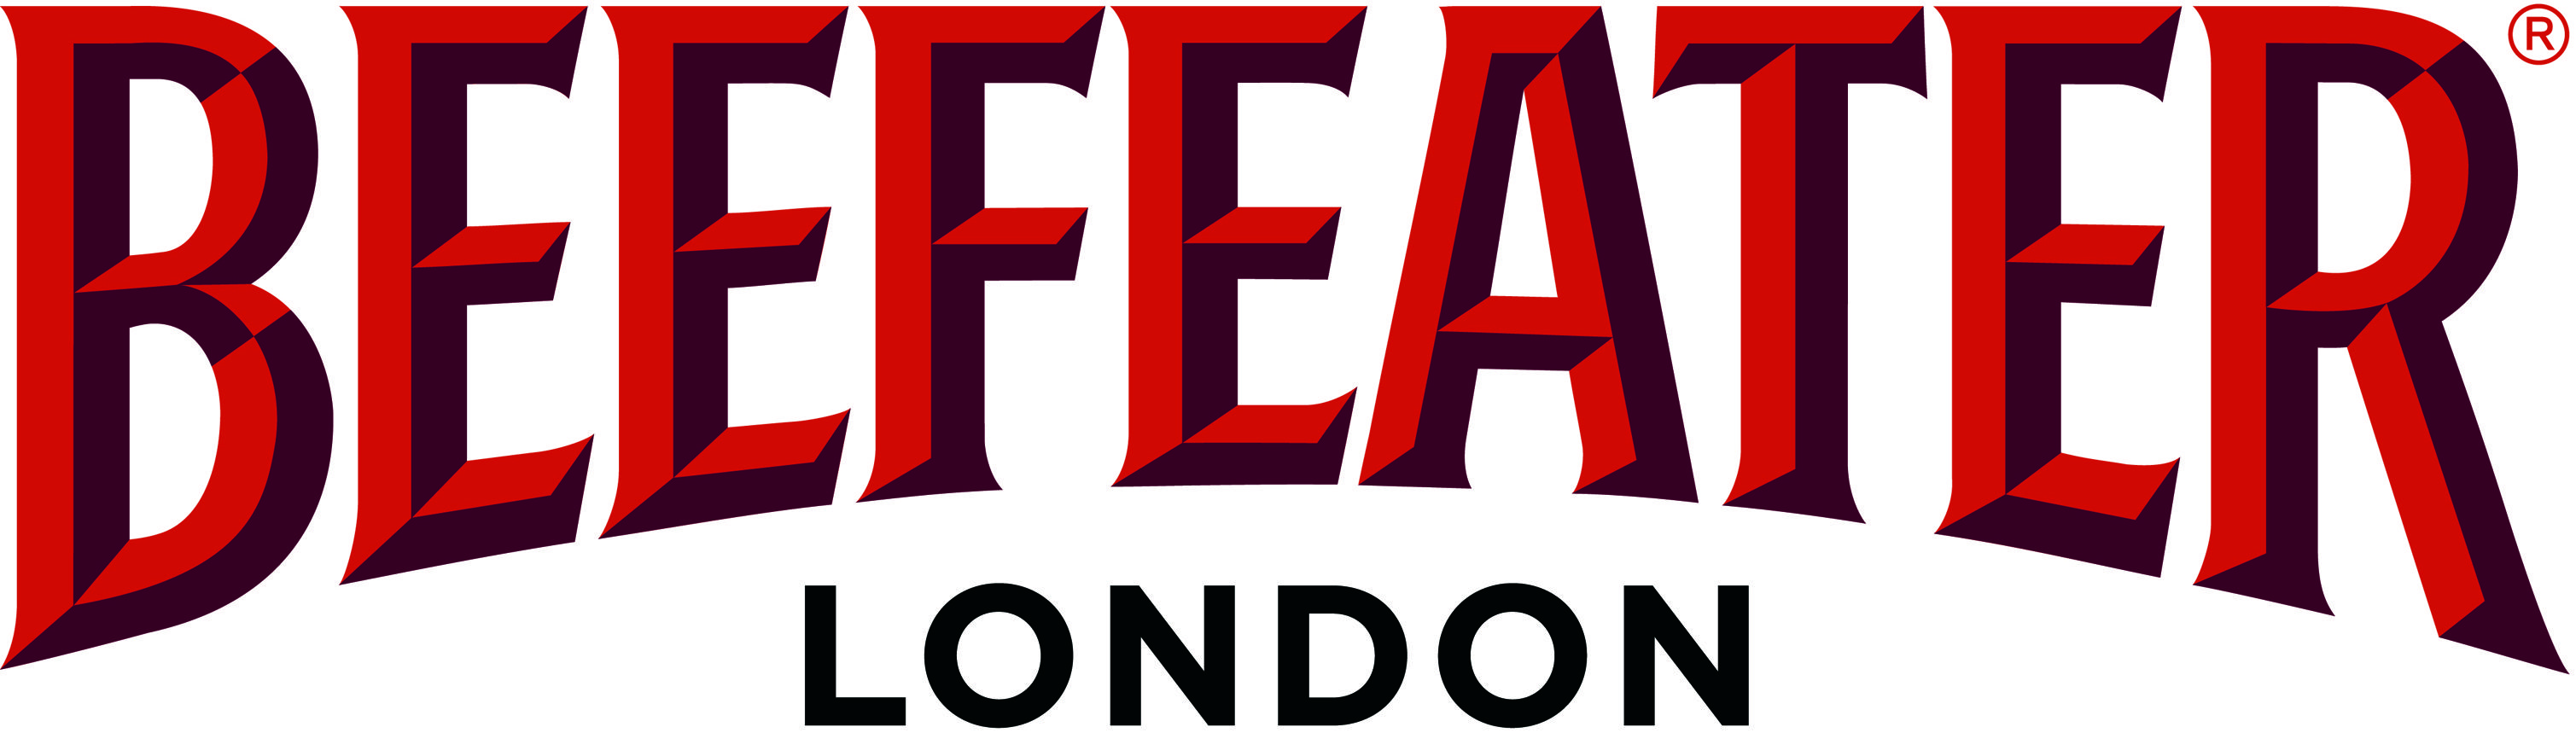 London_Beefeater-web